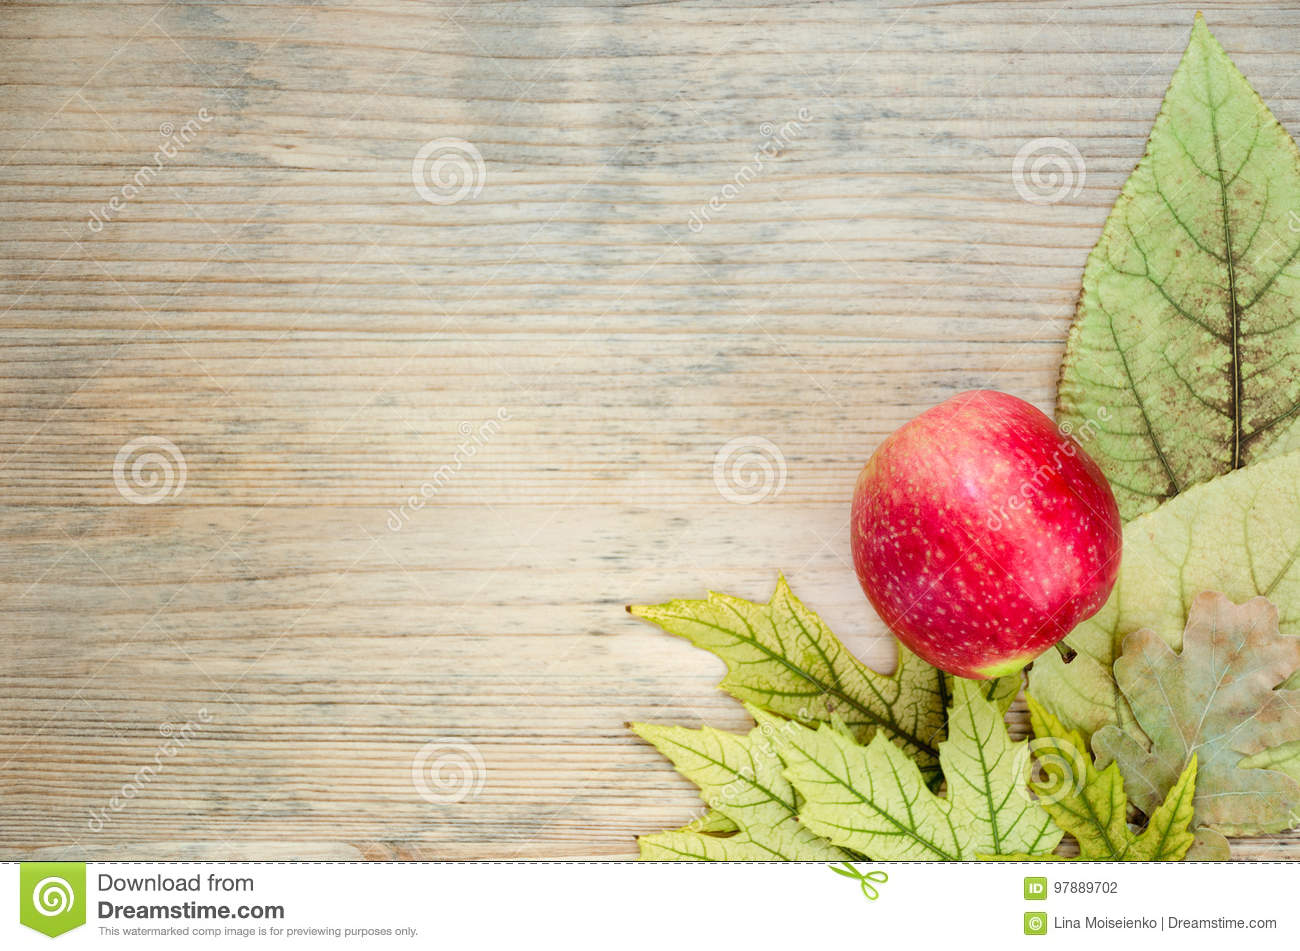 Colored autumn postcard - corner decorated with ripe red apple on yellow autumn leaves. Wooden background.